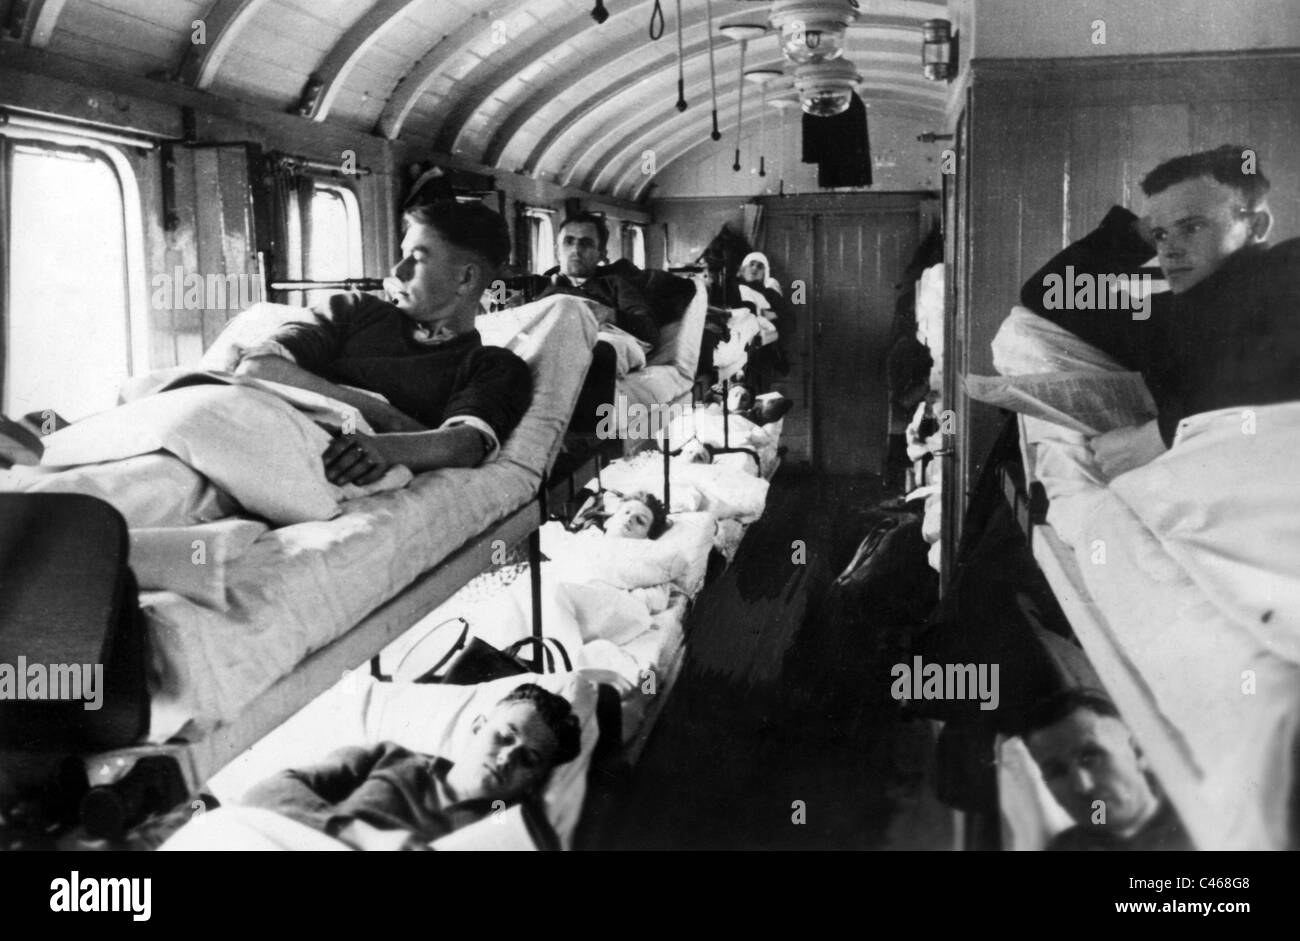 the interior of a hospital train 1940